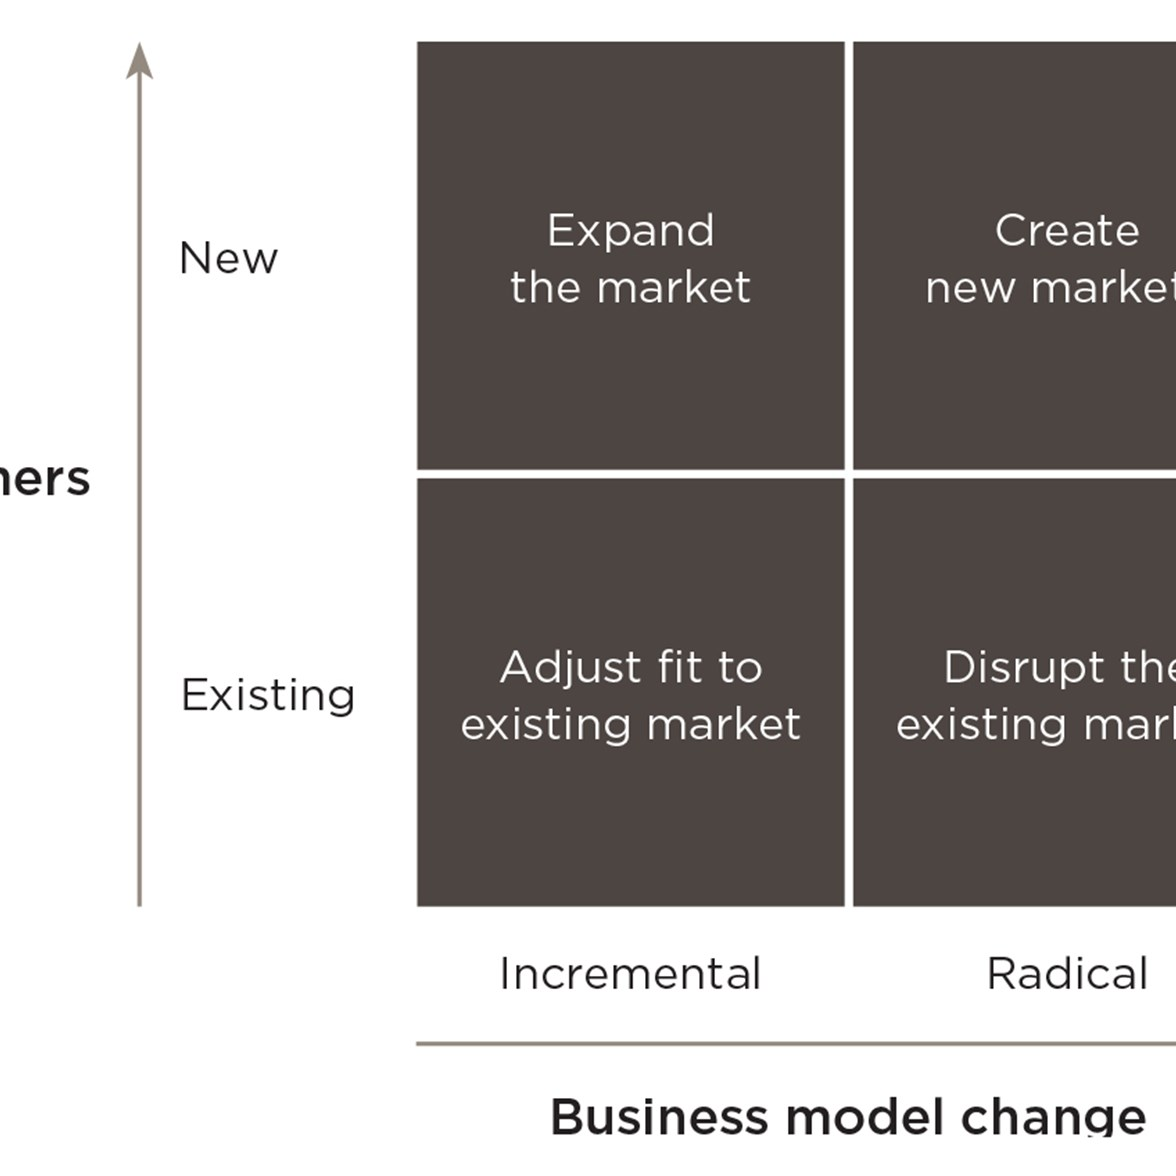 ypology of business model innovation opportunities